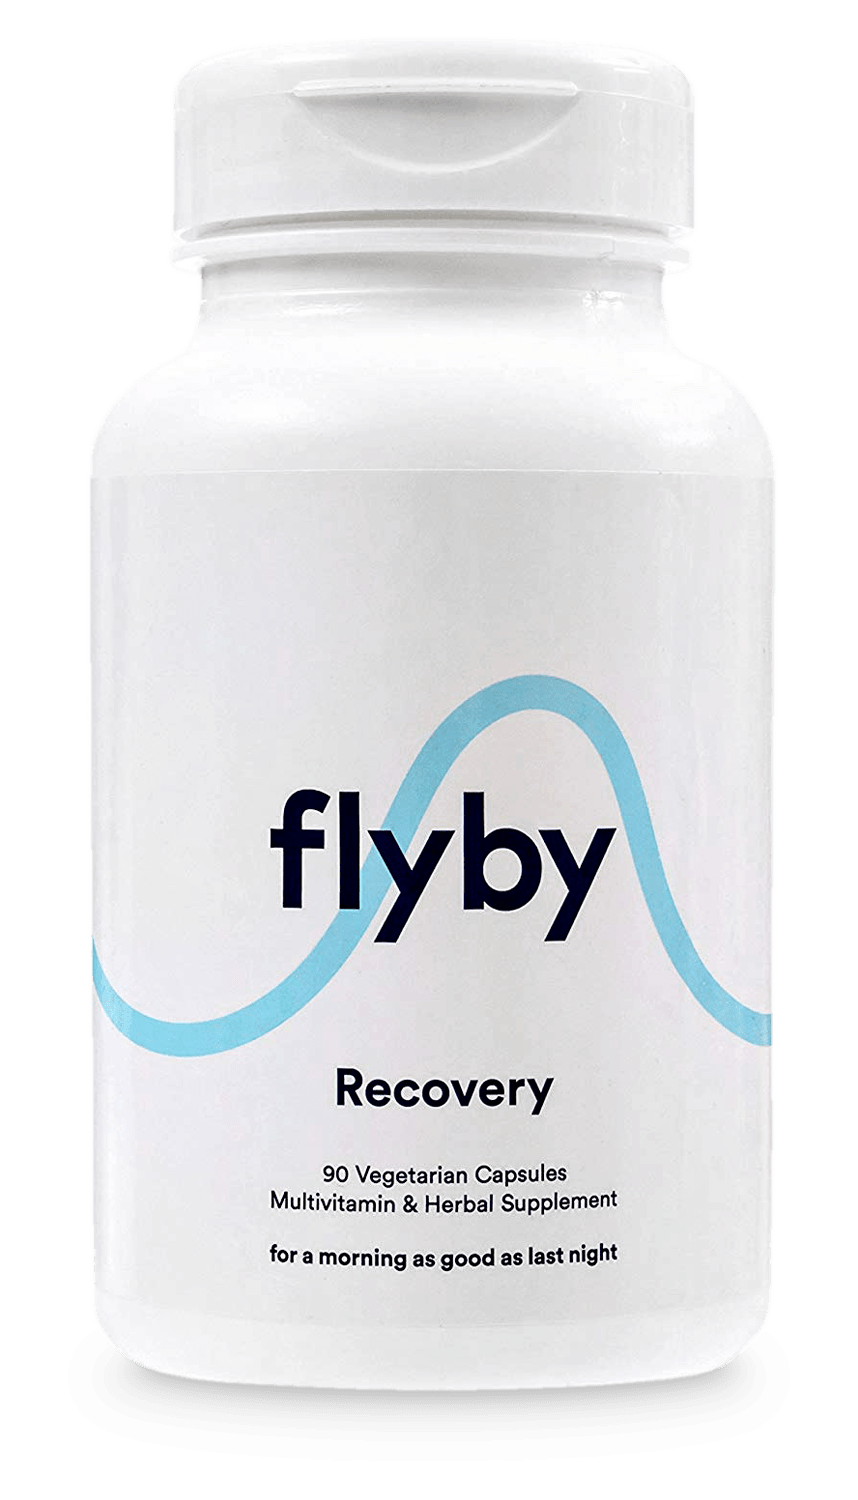 A bottle of Flyby pills